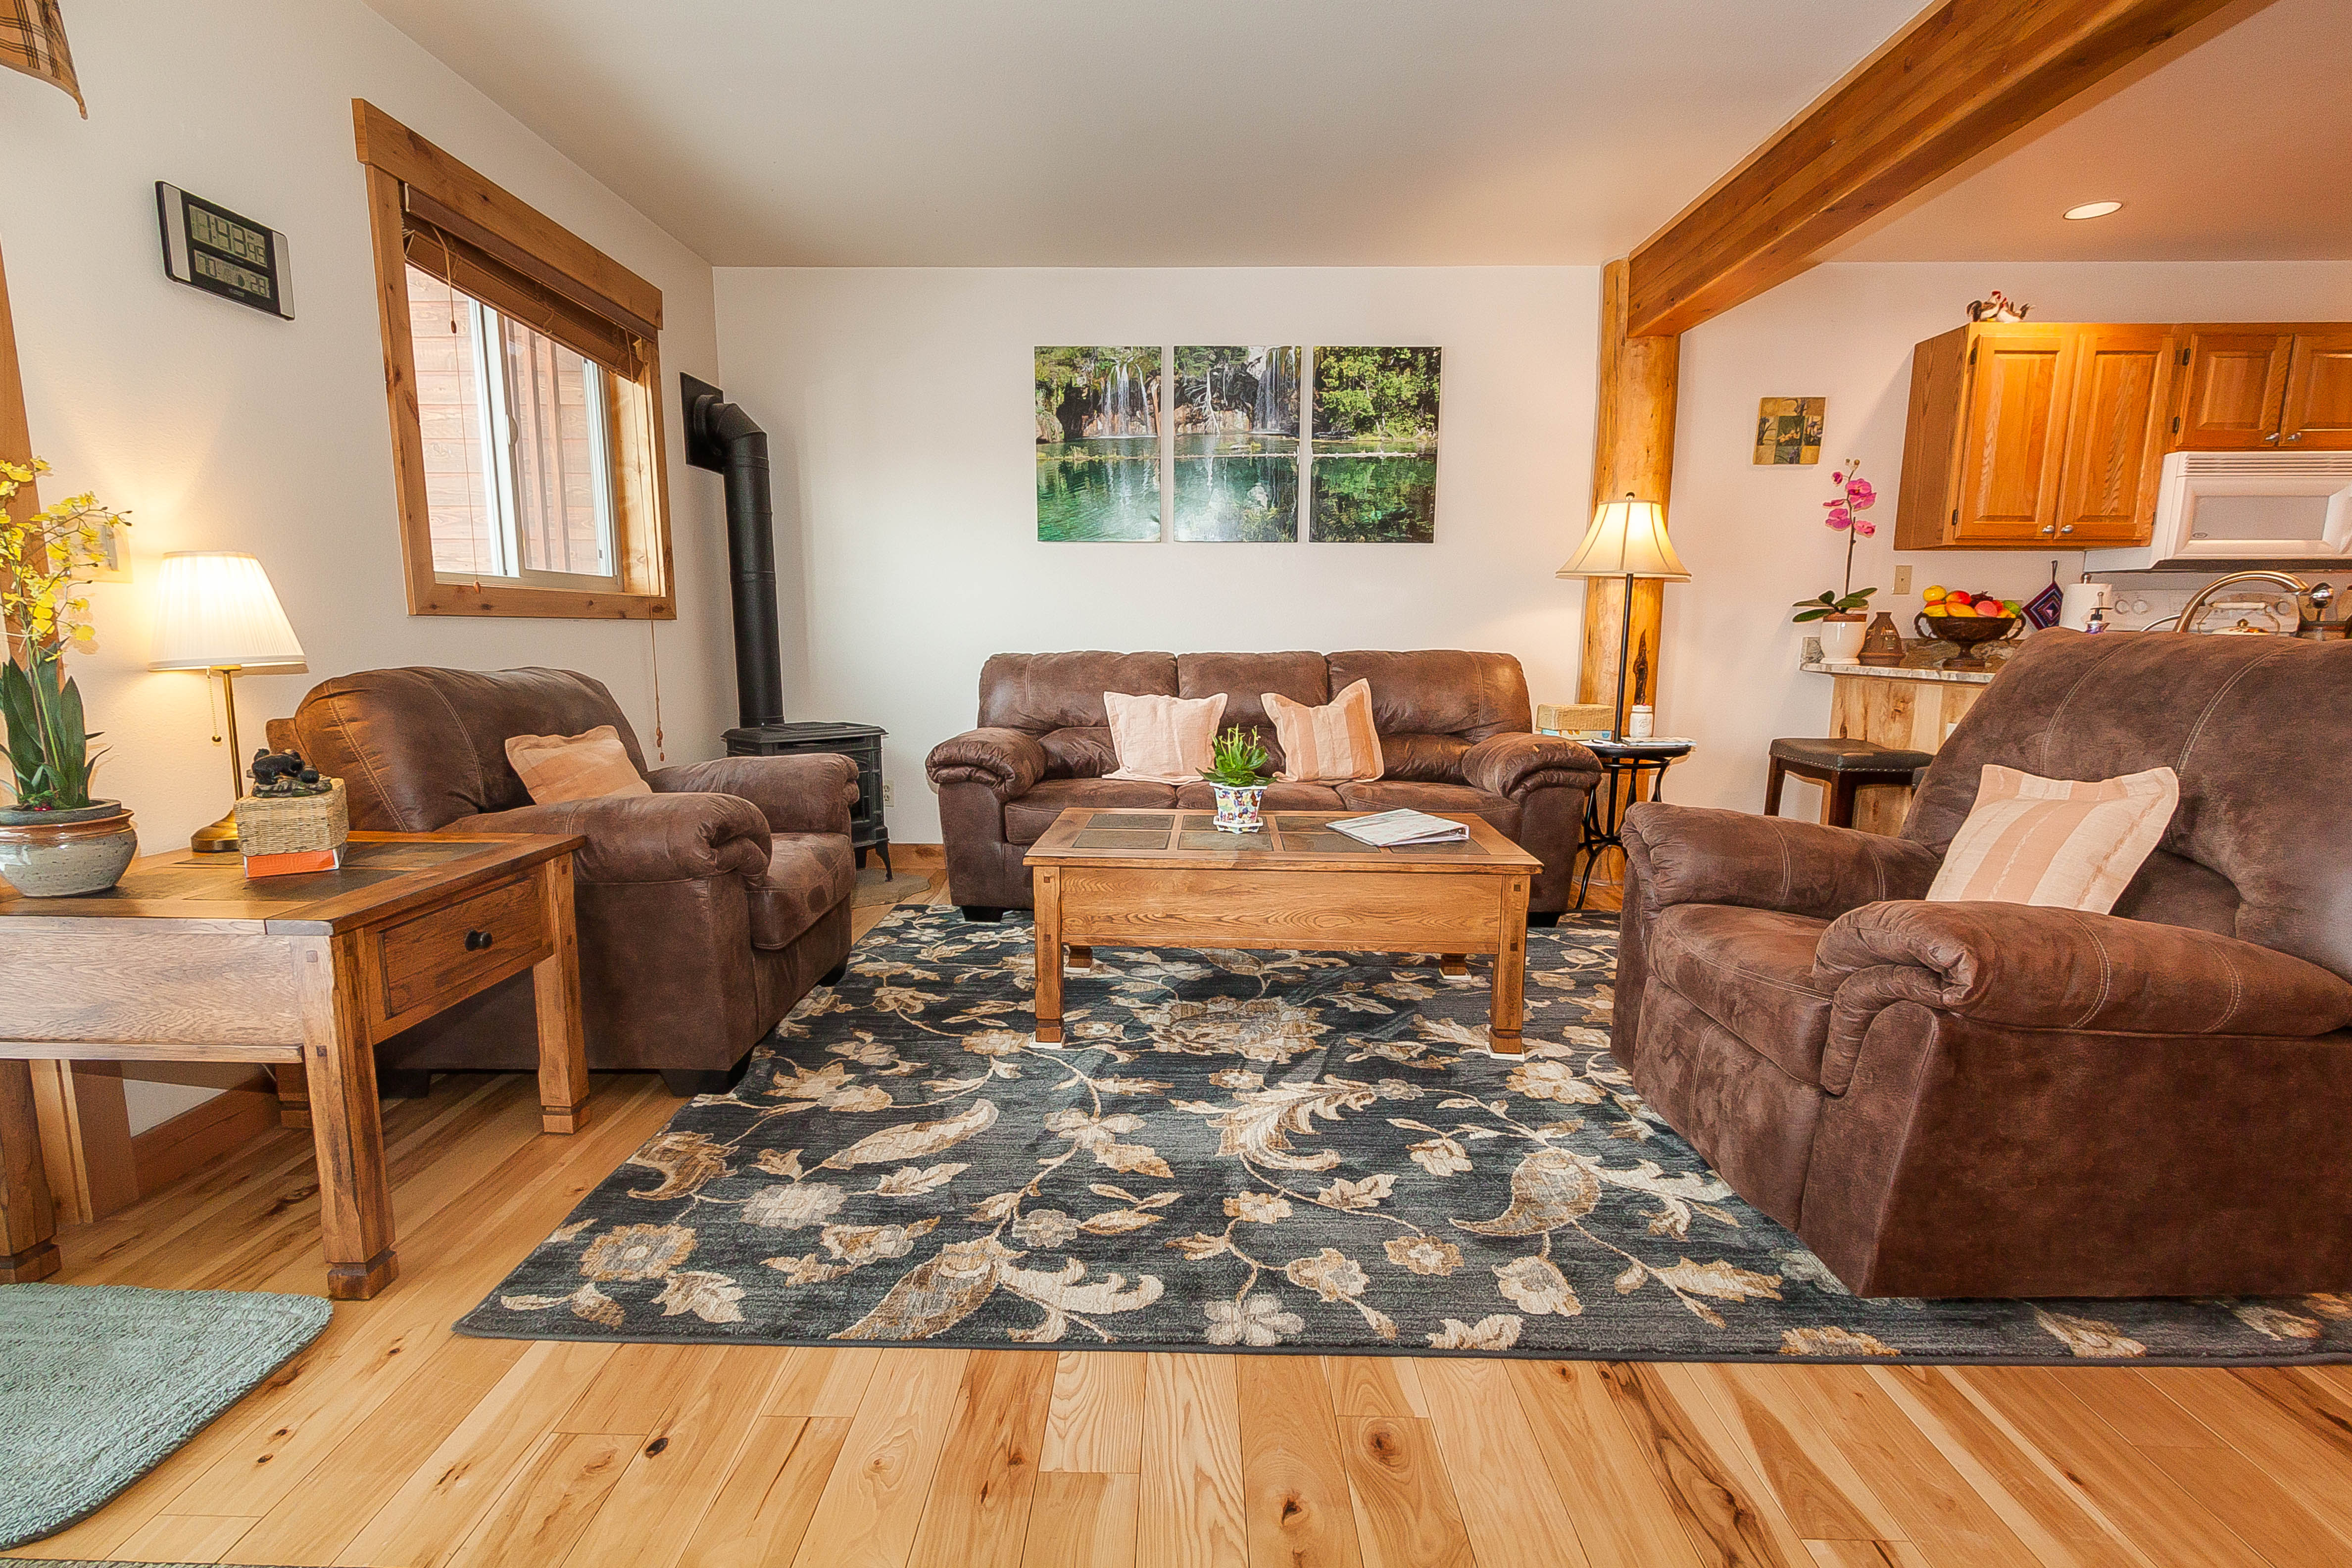 241 North Side Circle, Unit A in Silverthorne, Colorado